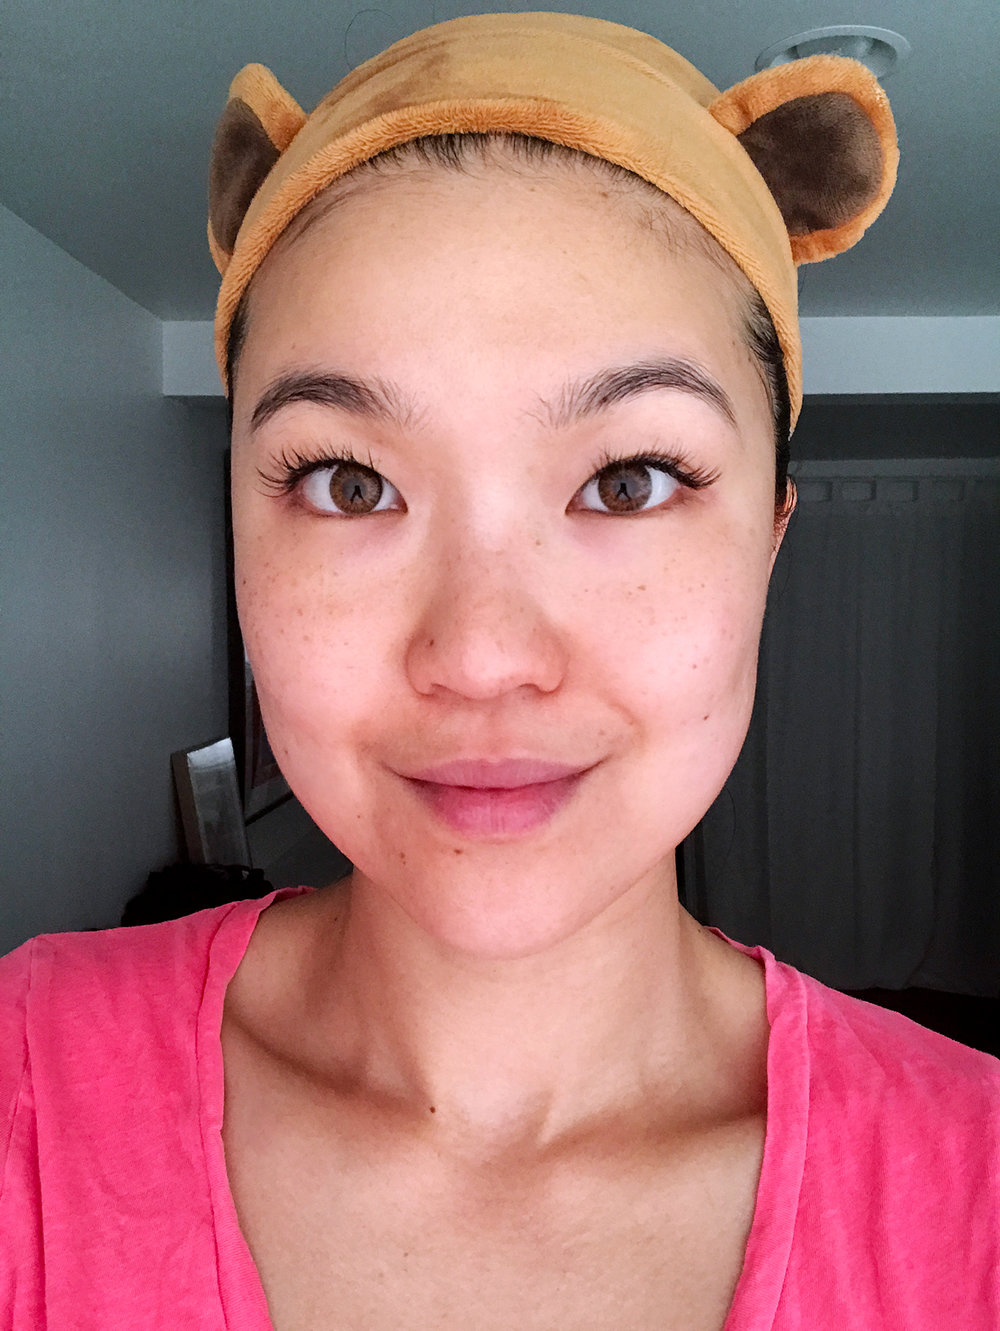 Day 1 (May 1st): How my skin looked before this #21DayMaskChallenge started.